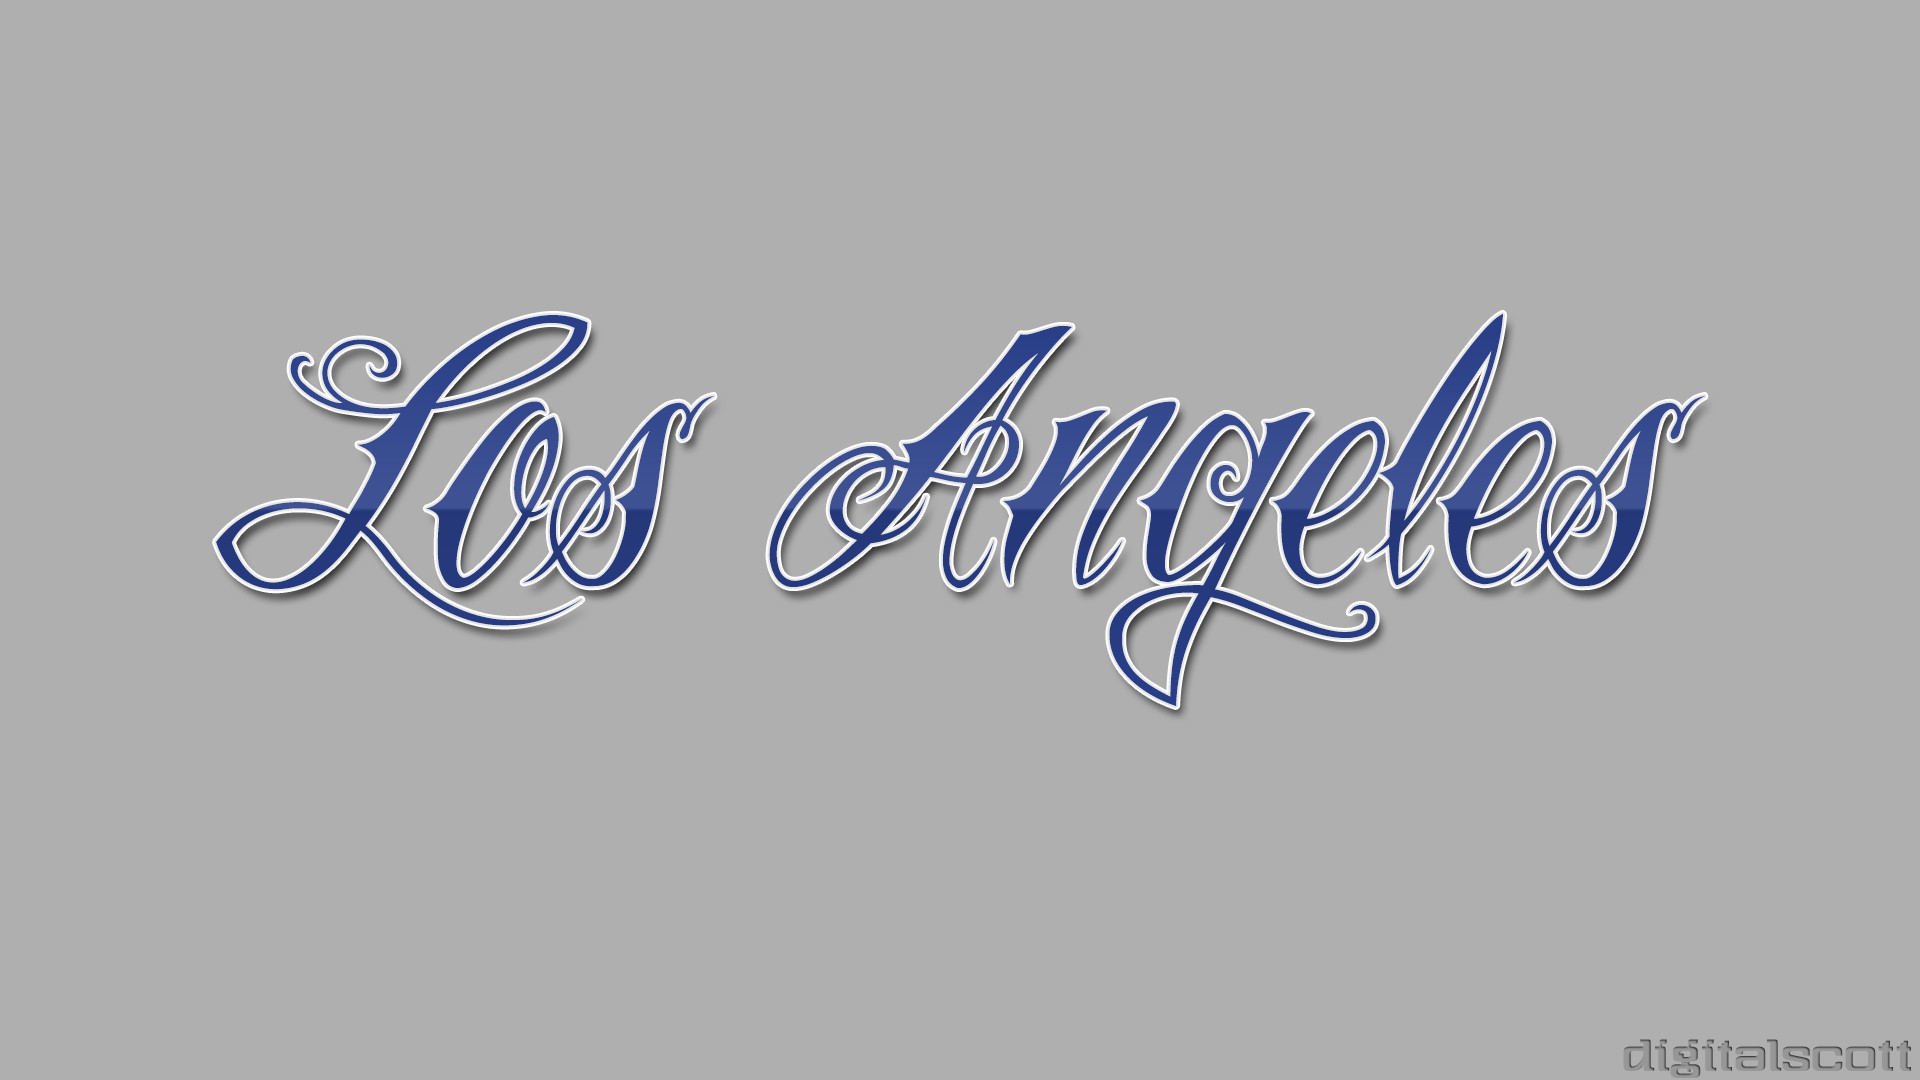 Dodgers wallpaper 76 images 2560x1440 cute girls wallpapers dodgers thecheapjerseys Choice Image